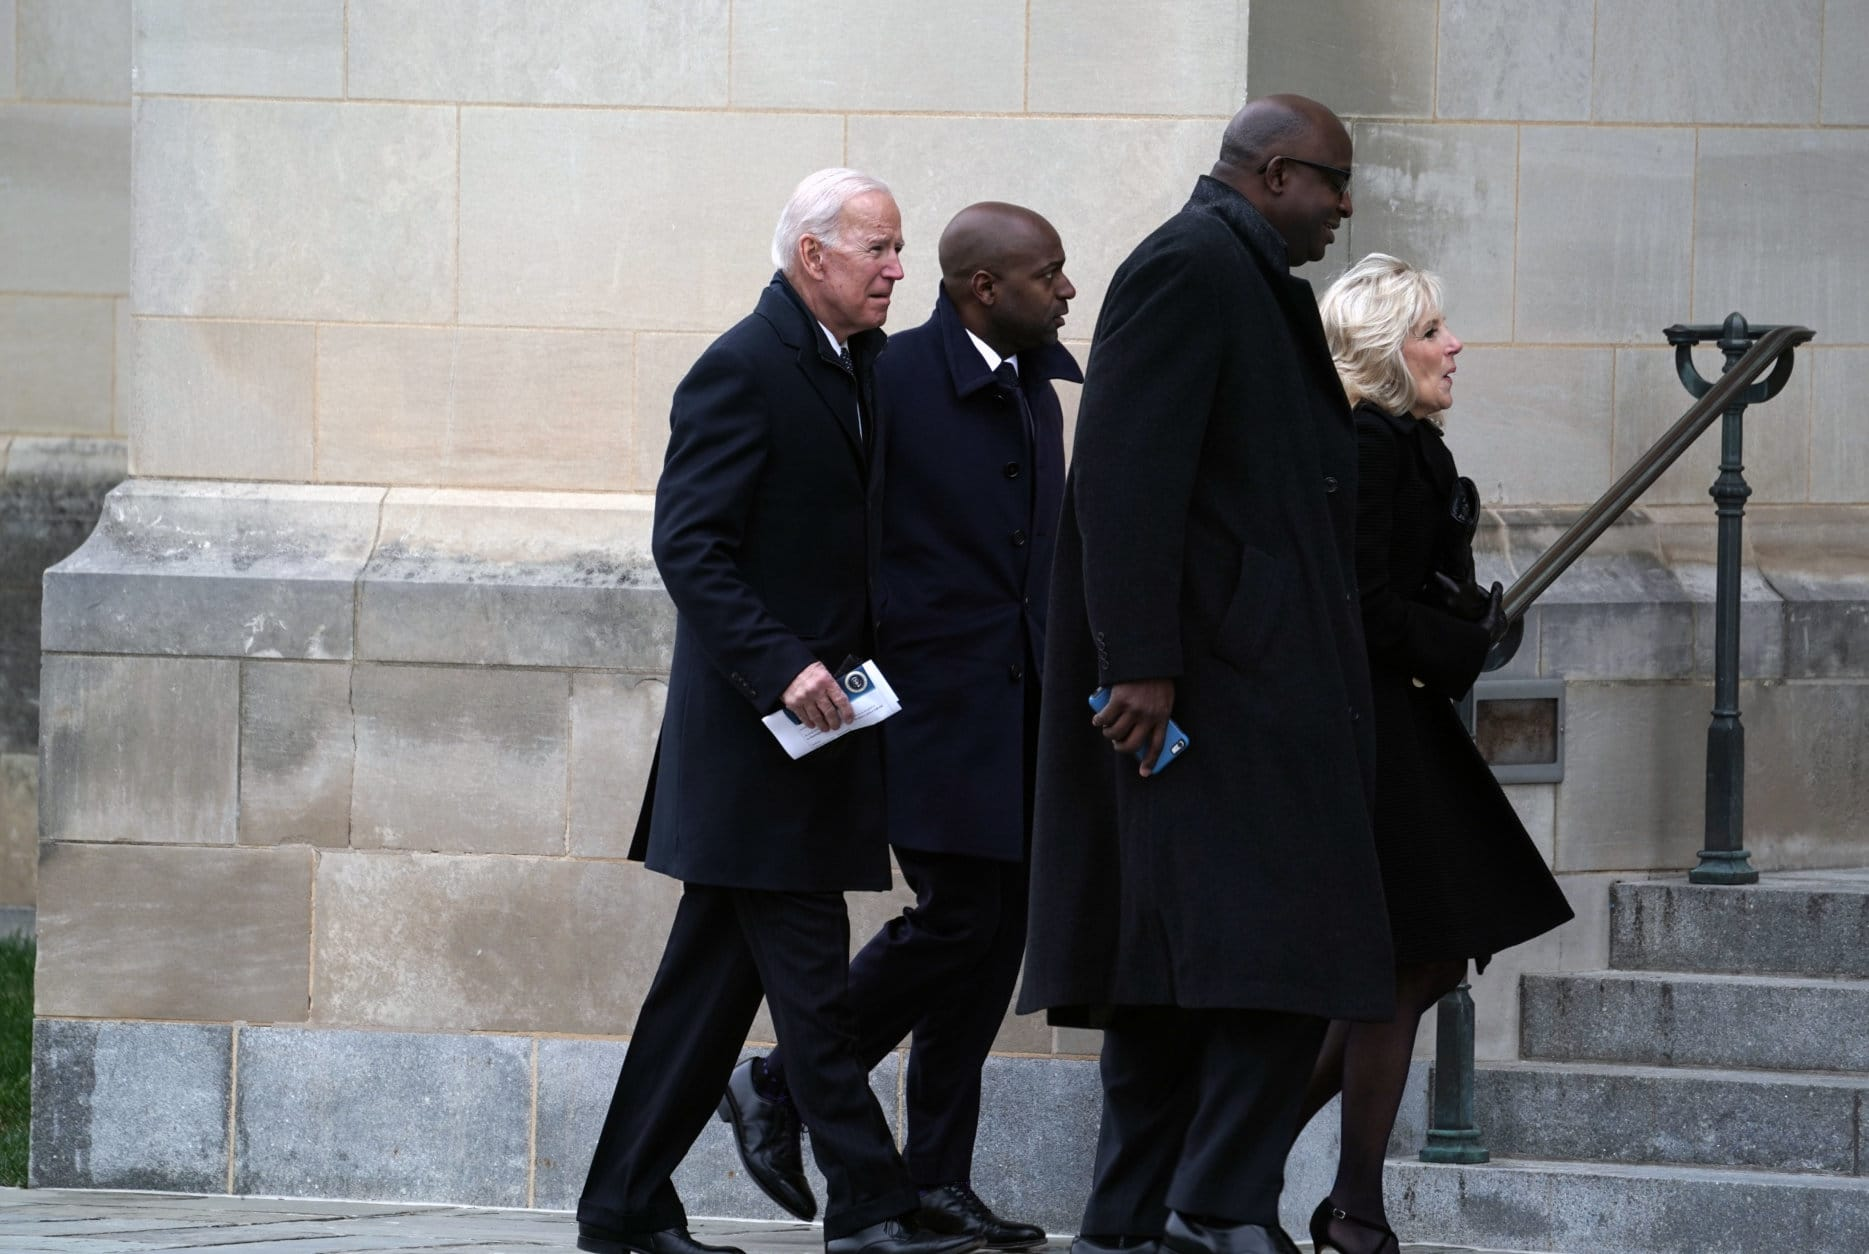 Former Vice President Joe Biden (L) along with his wife Jill Biden arrive for the funeral of late former U.S. President George H.W. Bush at the Washington National Cathedral December 5, 2018 in Washington, DC. President Bush will be buried at his final resting place at the George H.W. Bush Presidential Library at Texas A&M University in College Station, Texas. A WWII combat veteran, Bush served as a member of Congress from Texas, ambassador to the United Nations, director of the CIA, vice president and 41st president of the United States. (Photo by Alex Wong/Getty Images)